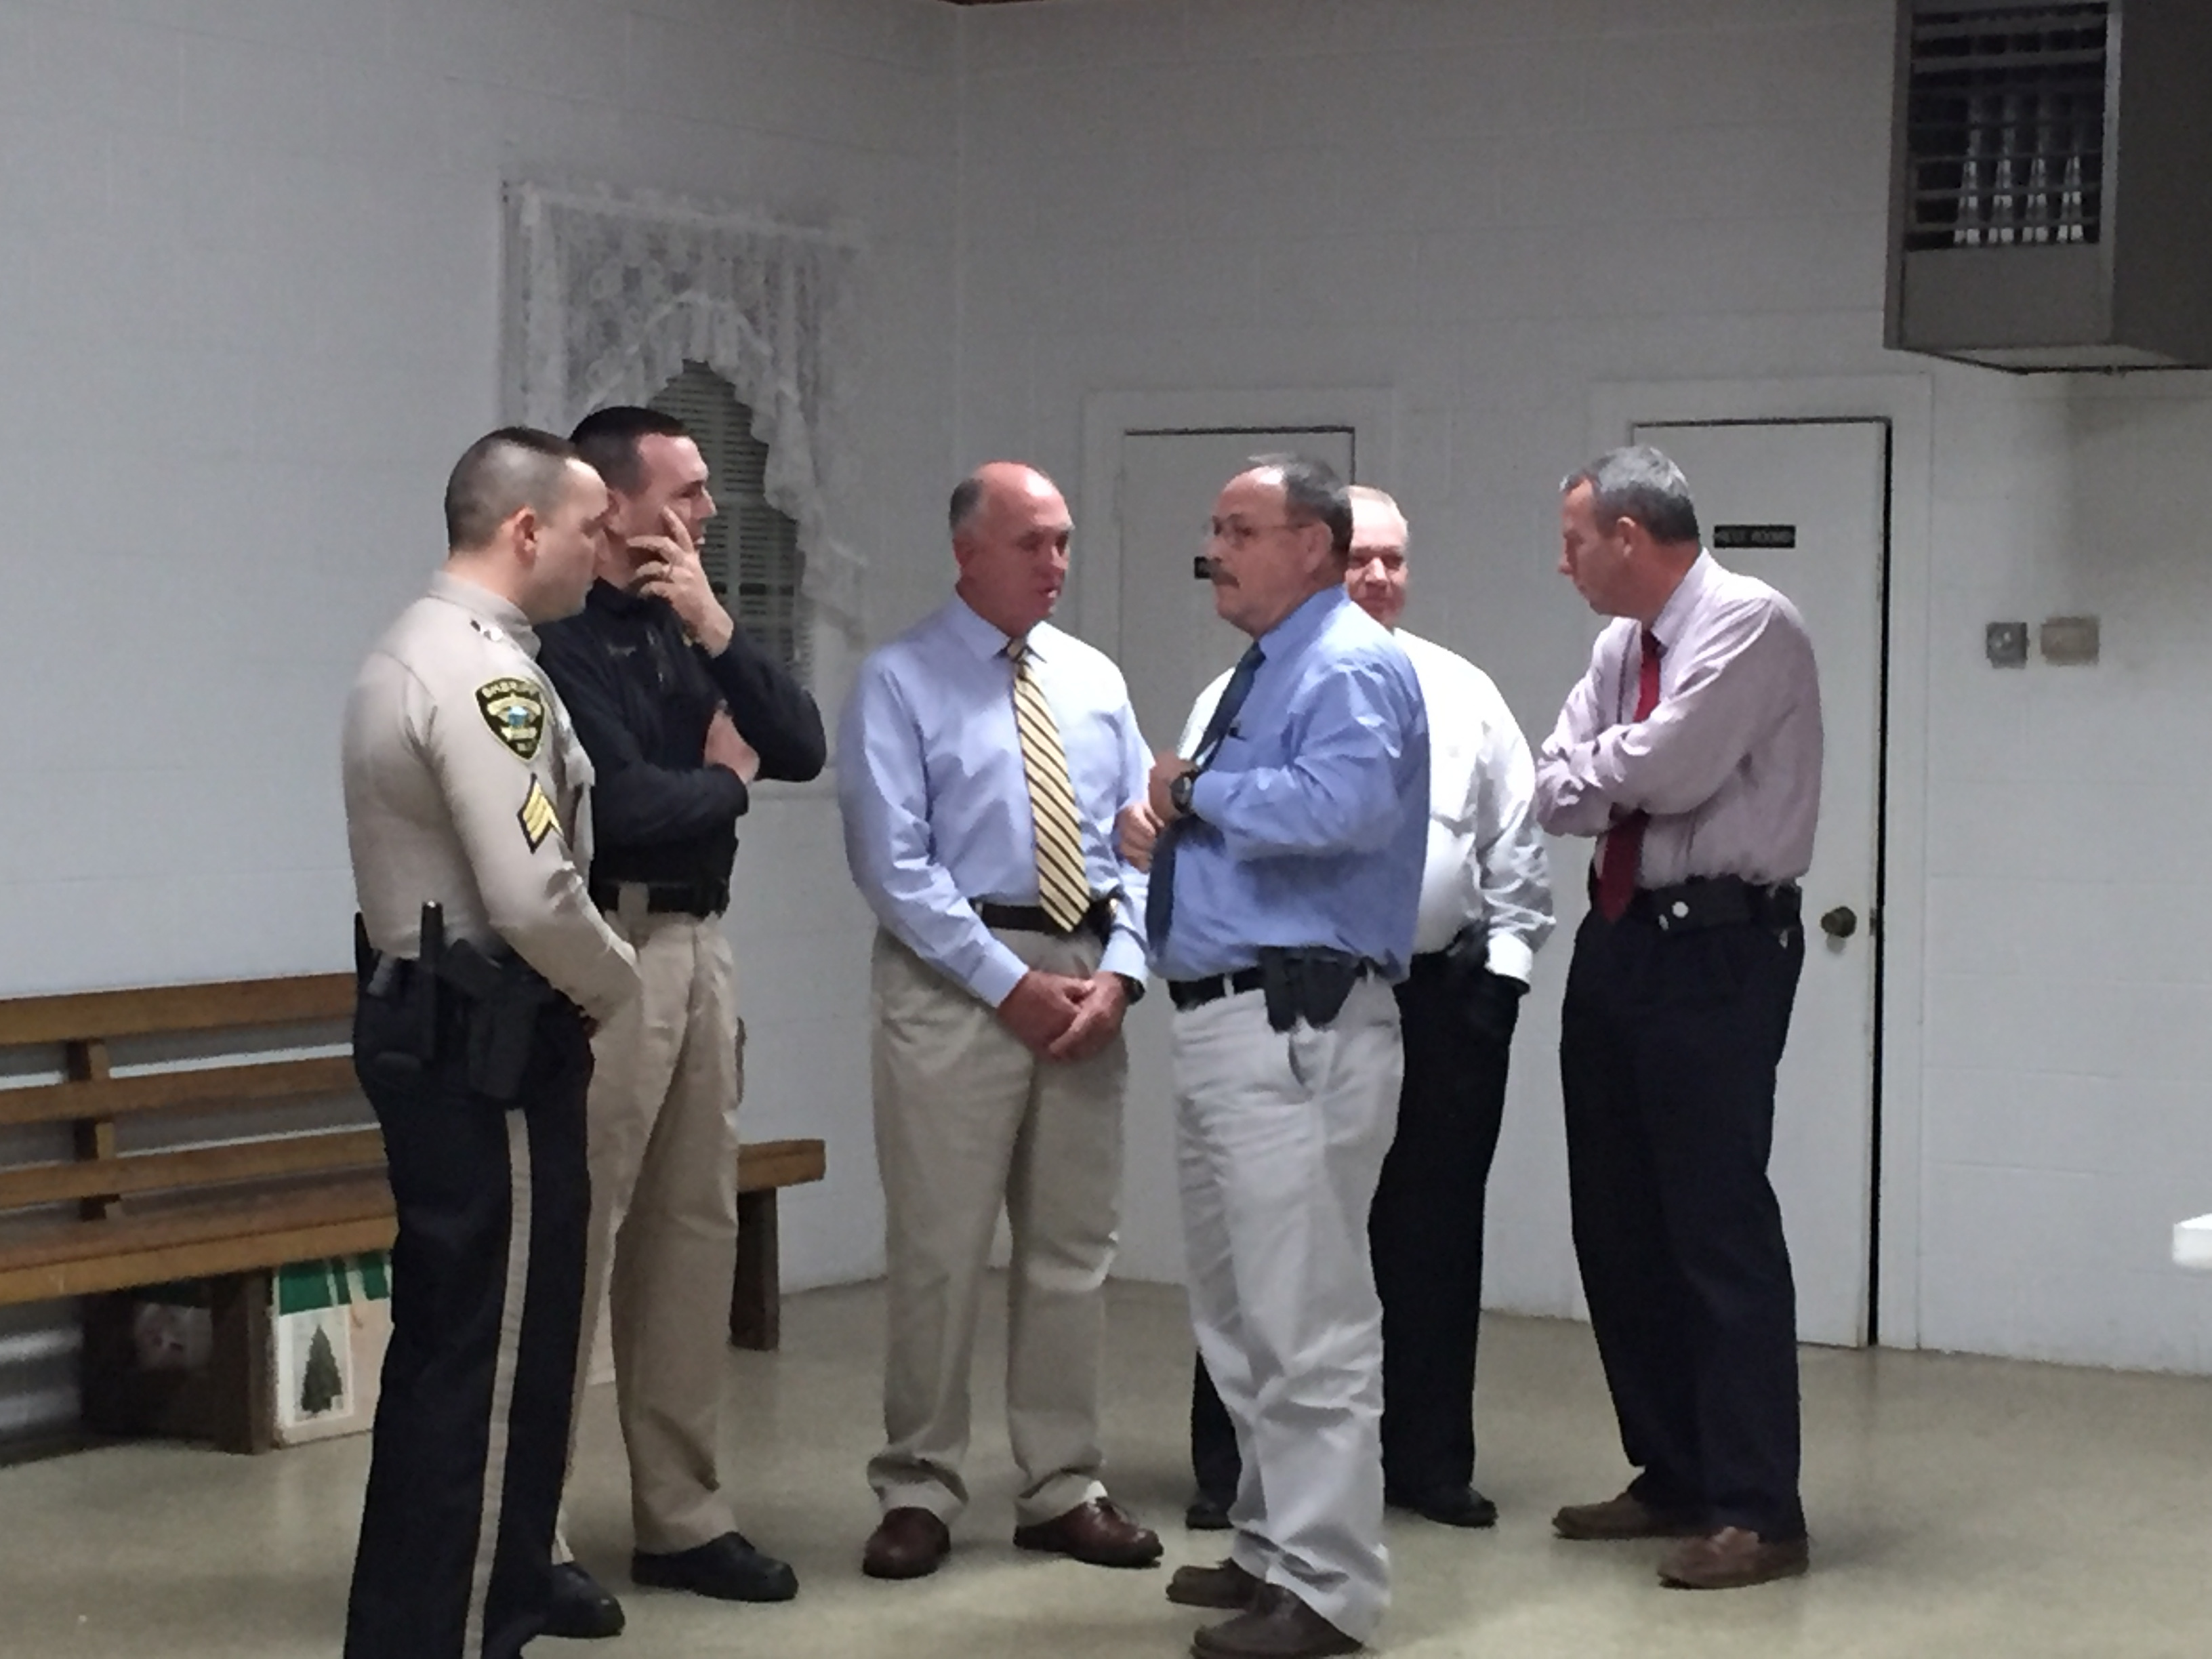 Sheriff and staff visit with Community Watch group